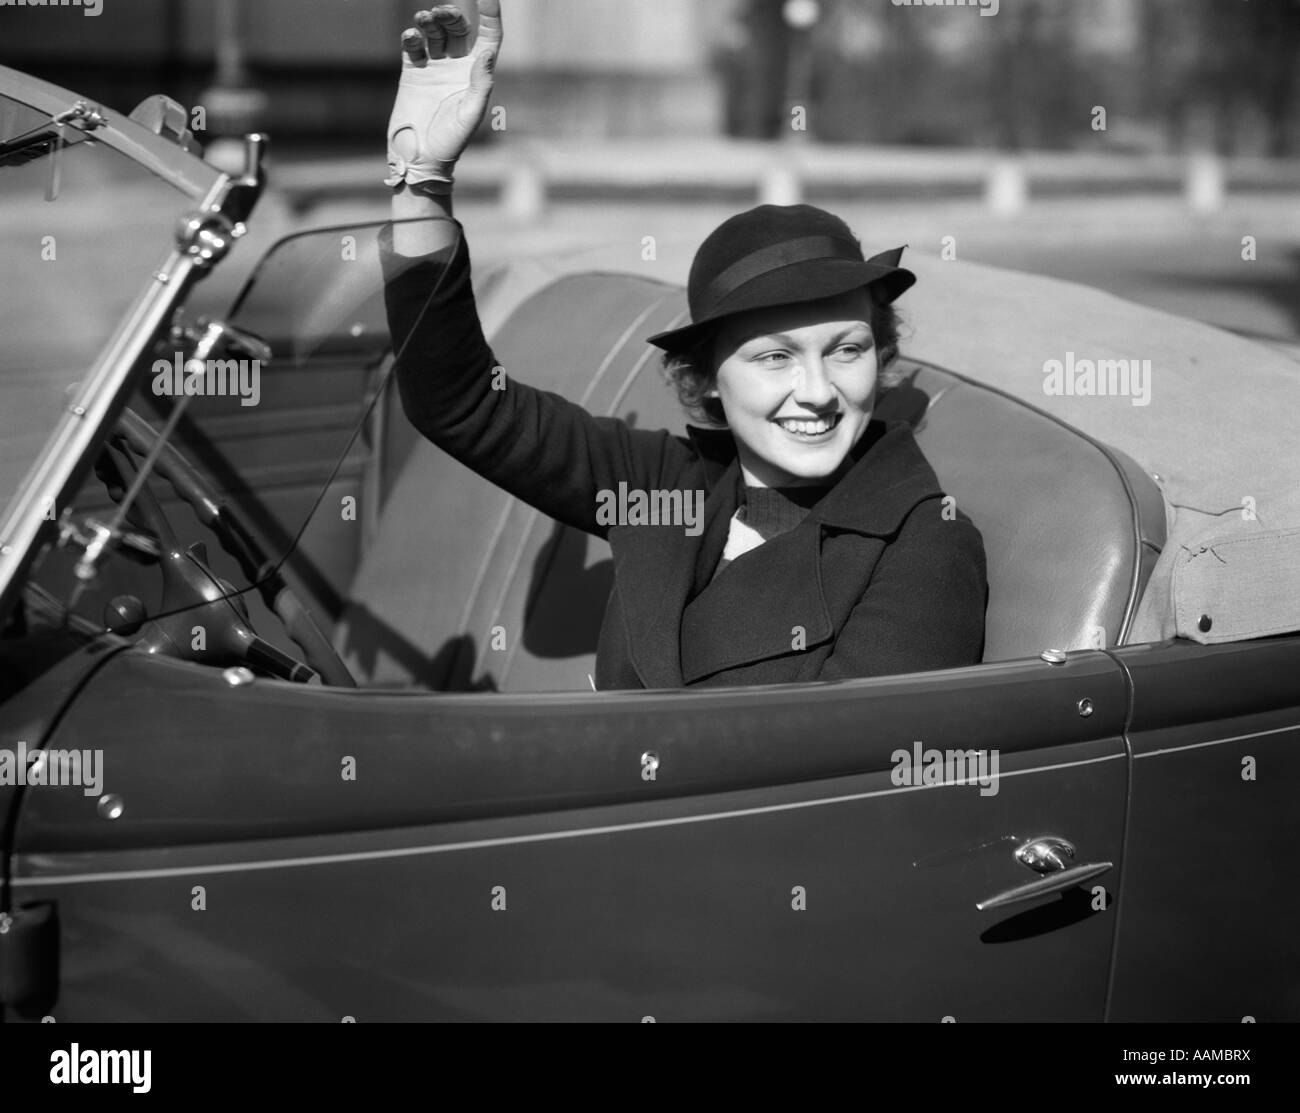 Woman Driving Convertible Black and White Stock Photos & Images ...